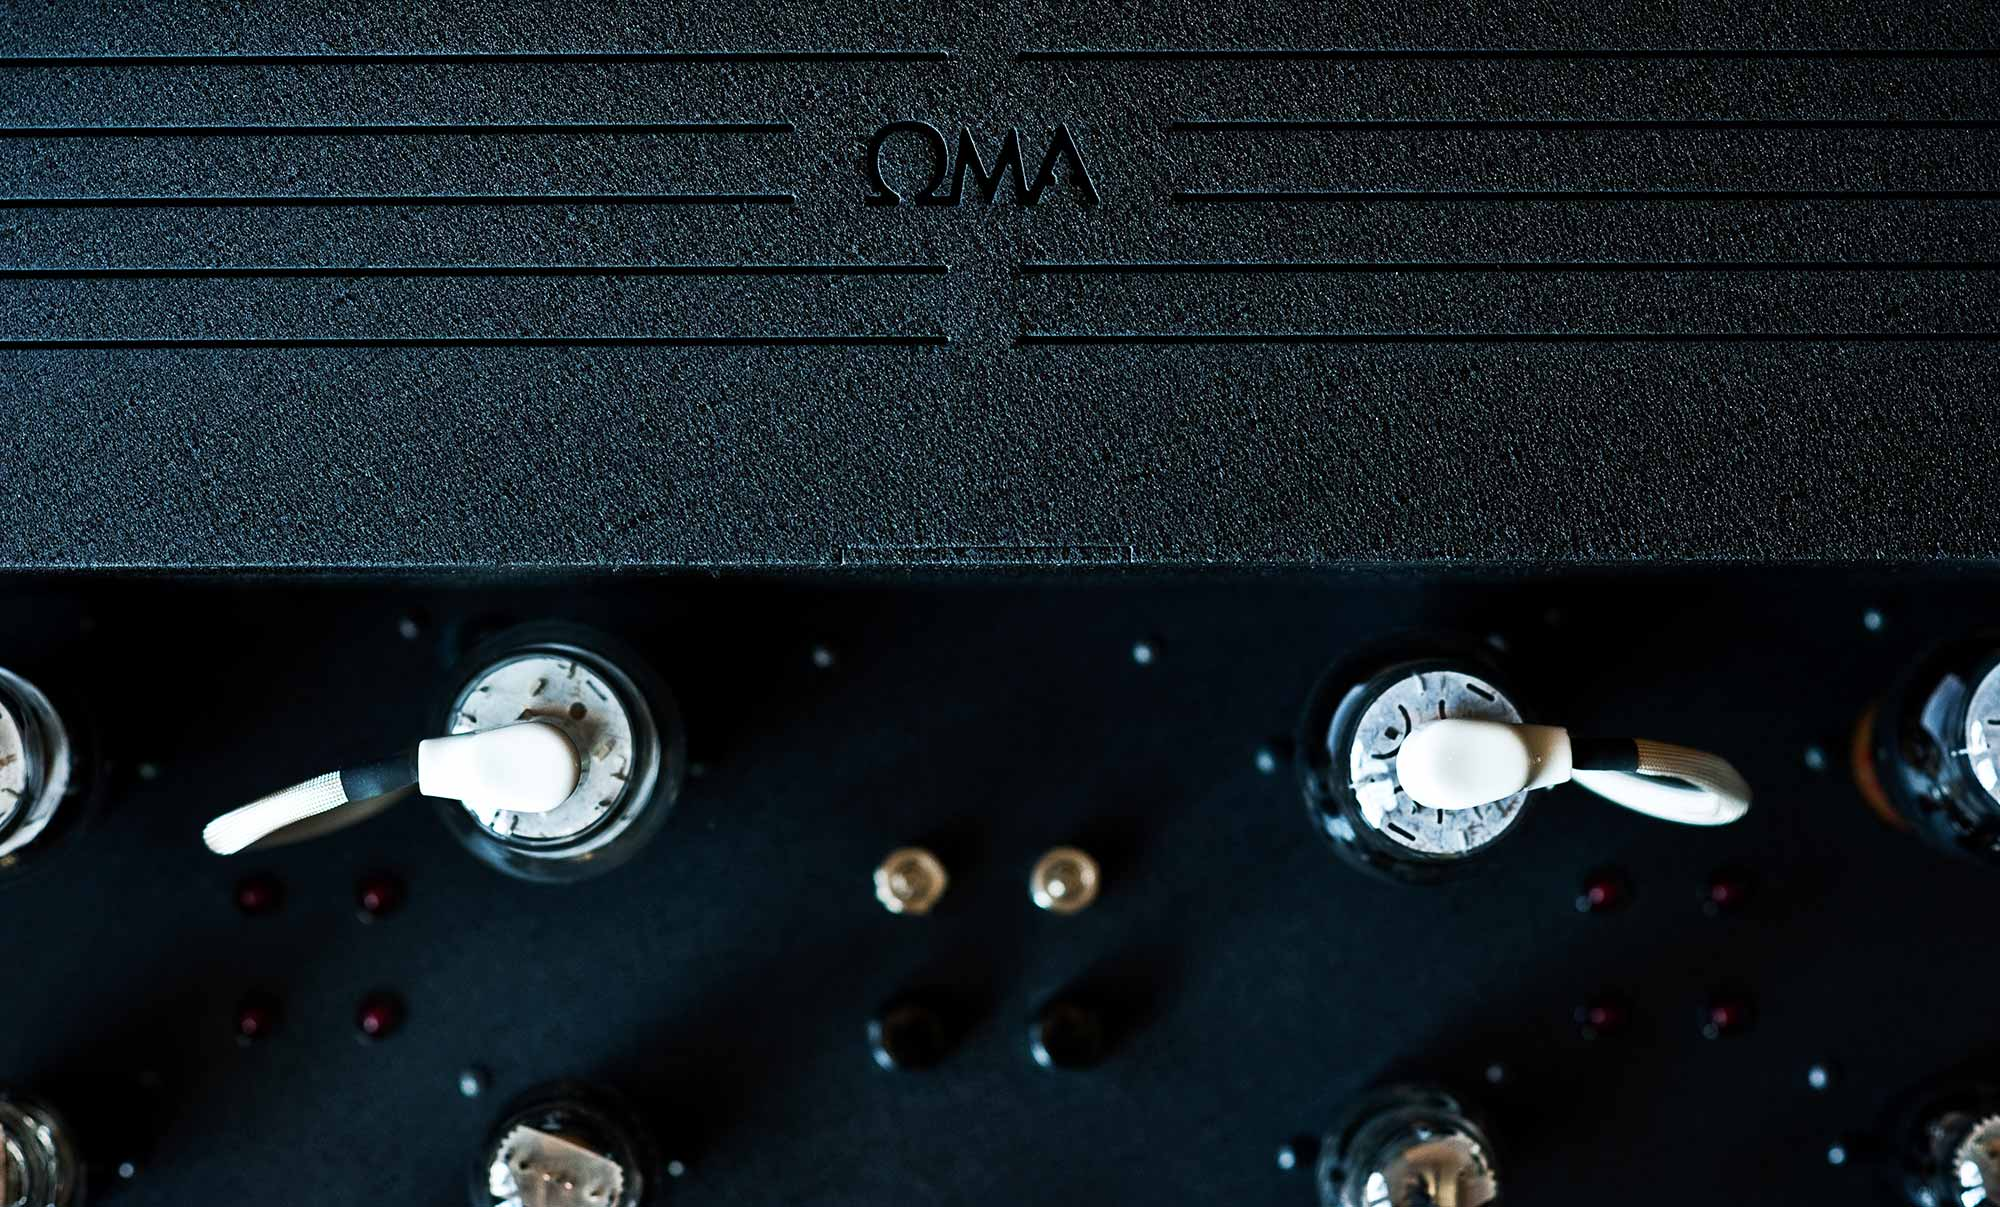 oswalds mill audio black knight oma amplifiers. Black Bedroom Furniture Sets. Home Design Ideas